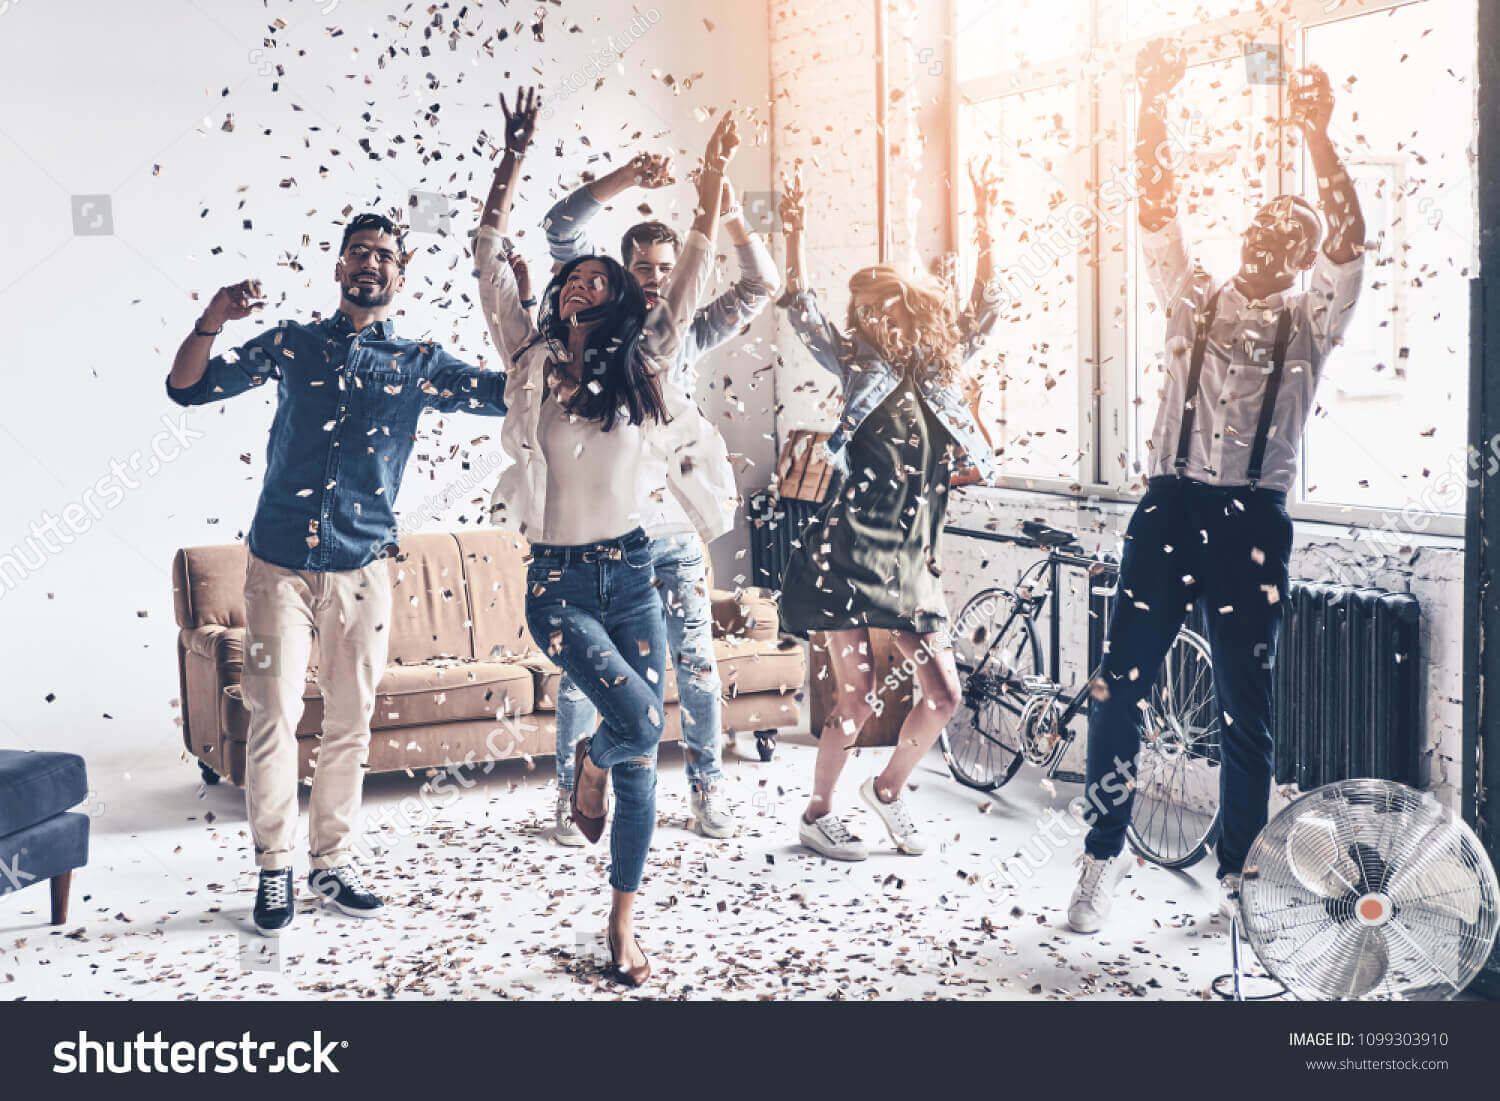 stock-photo-so-much-fun-full-length-of-happy-young-people-dancing-while-spending-time-at-home-with-confetti-1099303910